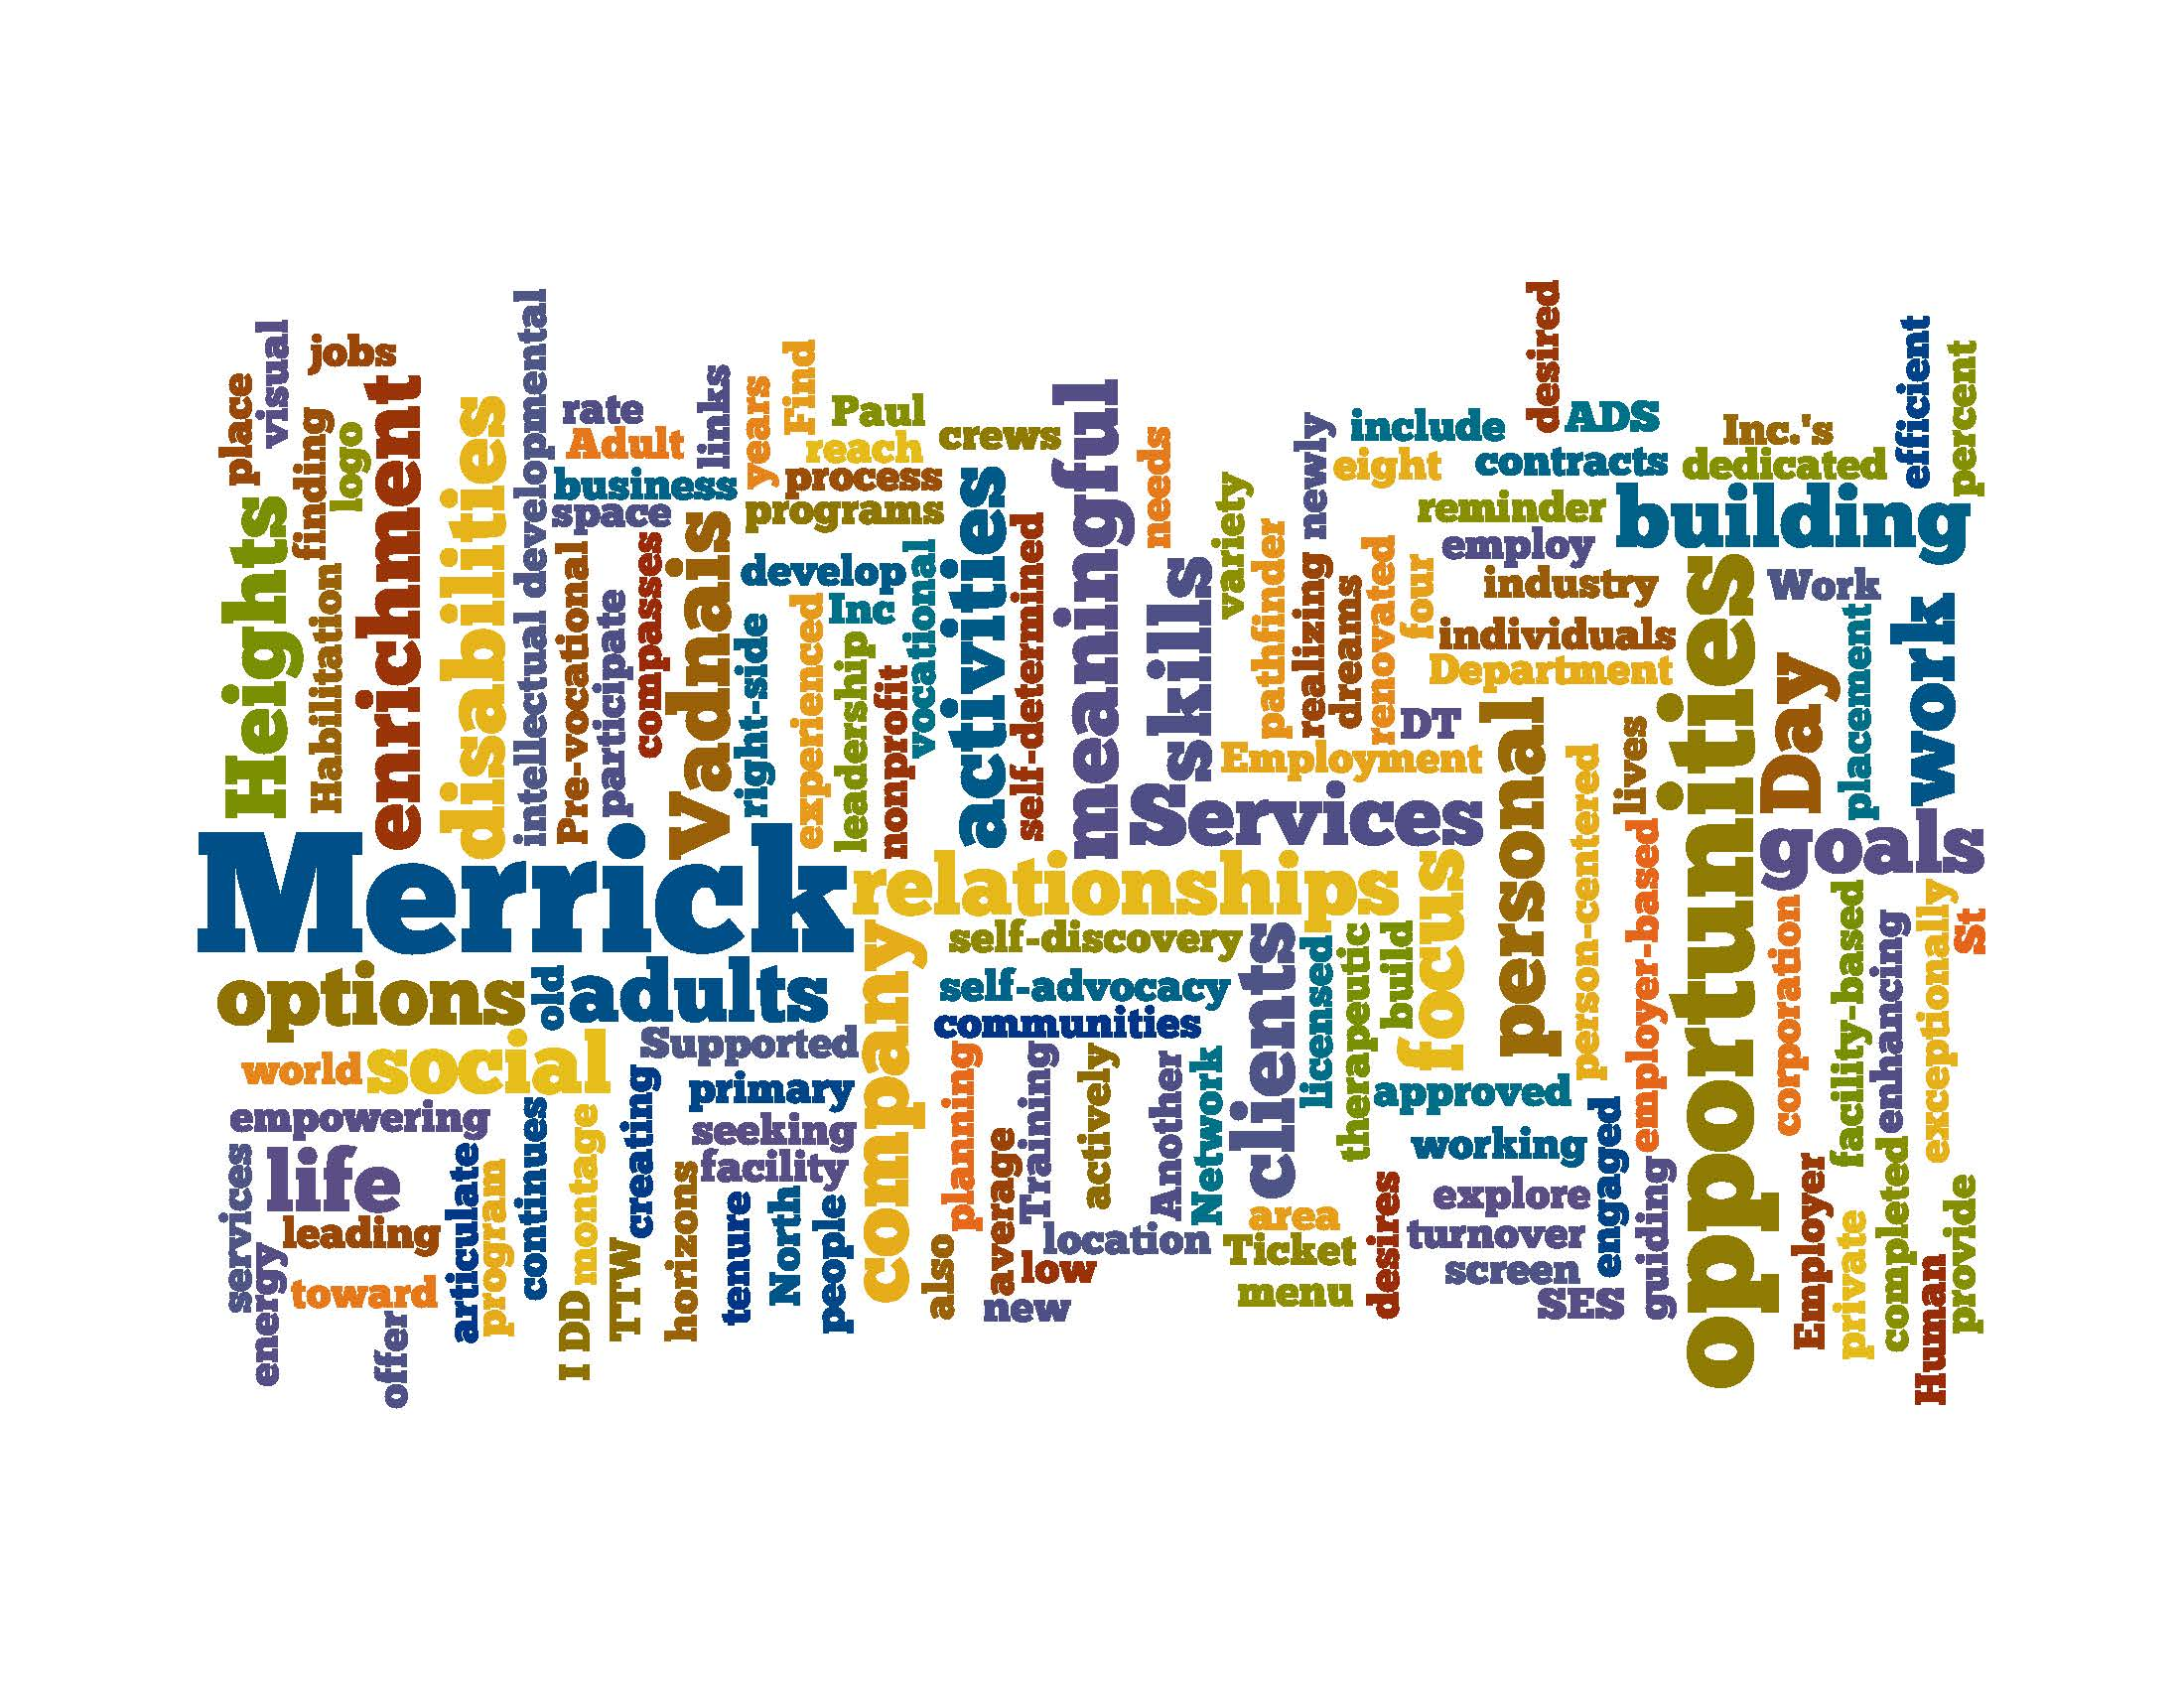 wordle 2012 of About page